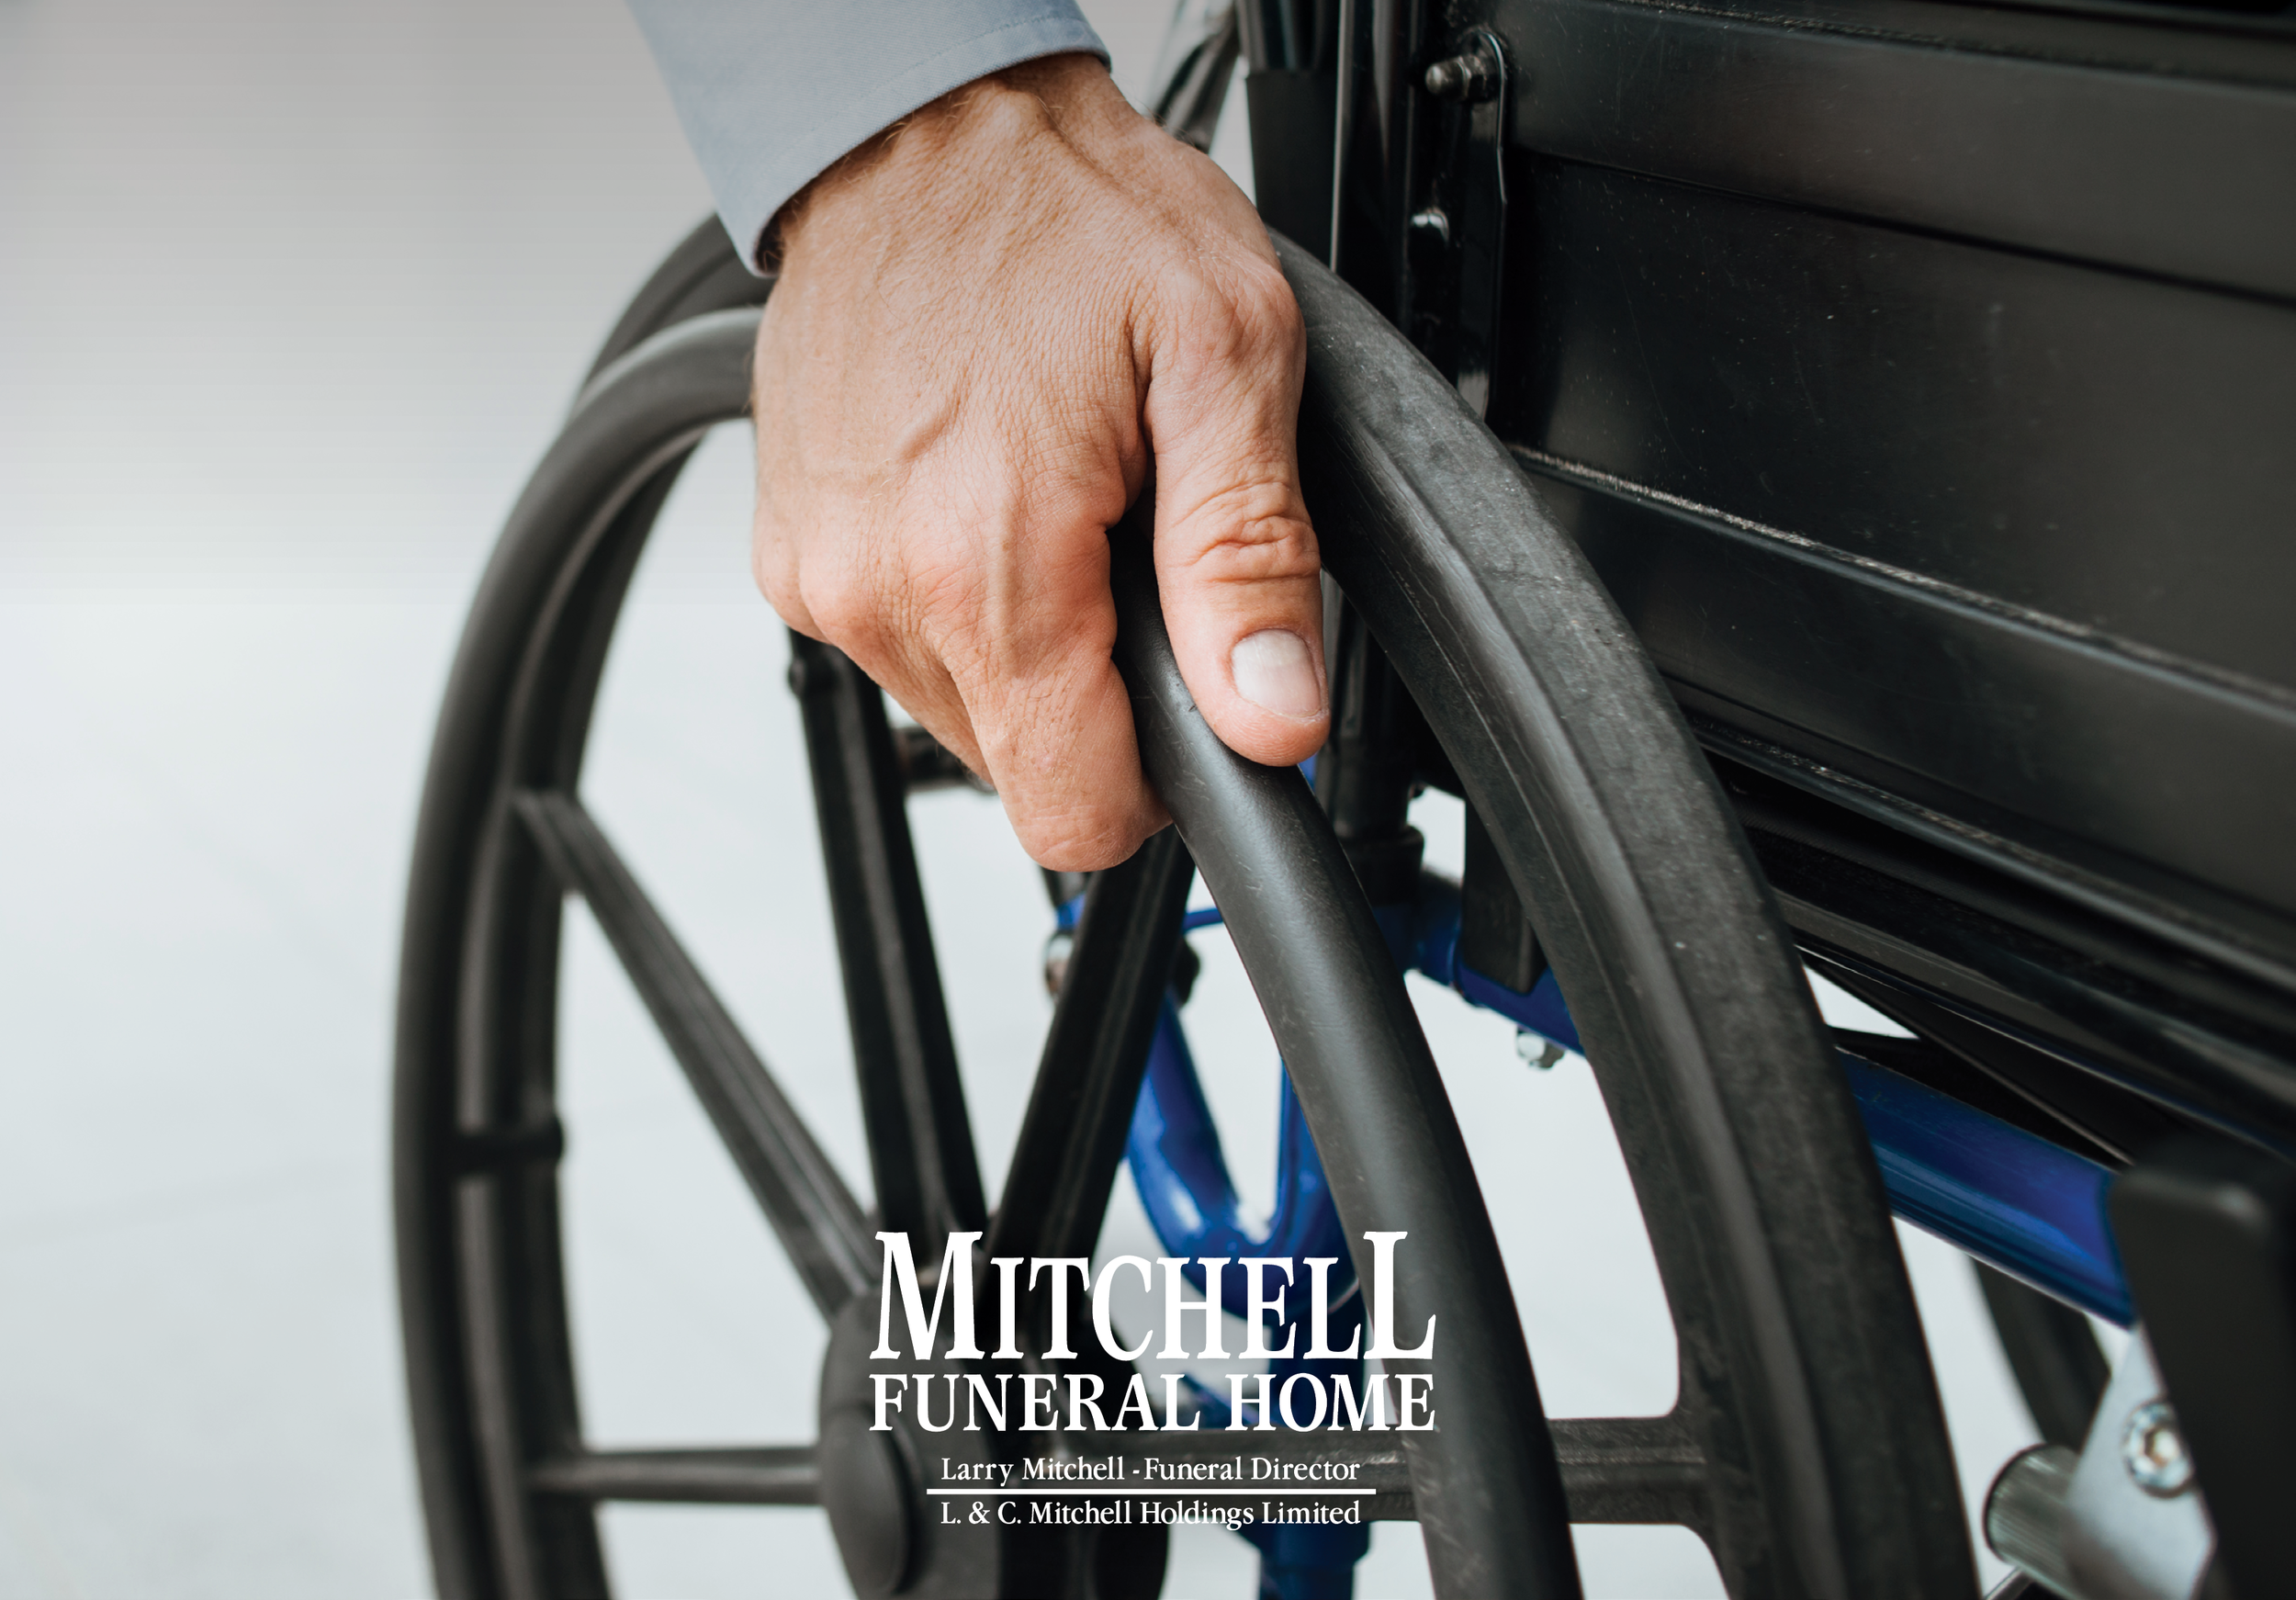 "Accessibilty - Mitchell Funeral Home is welcoming to all and fully accessible. ""Our wheelchair entrance used to be at the back, but it was very important to us that everyone, no matter your accessibly needs, enters through the same door. So, we were pleased to make that change to the building. When you come in through our front door, everything you need is on the main level."" - Larry Mitchell, owner and funeral director at Mitchell Funeral Home."